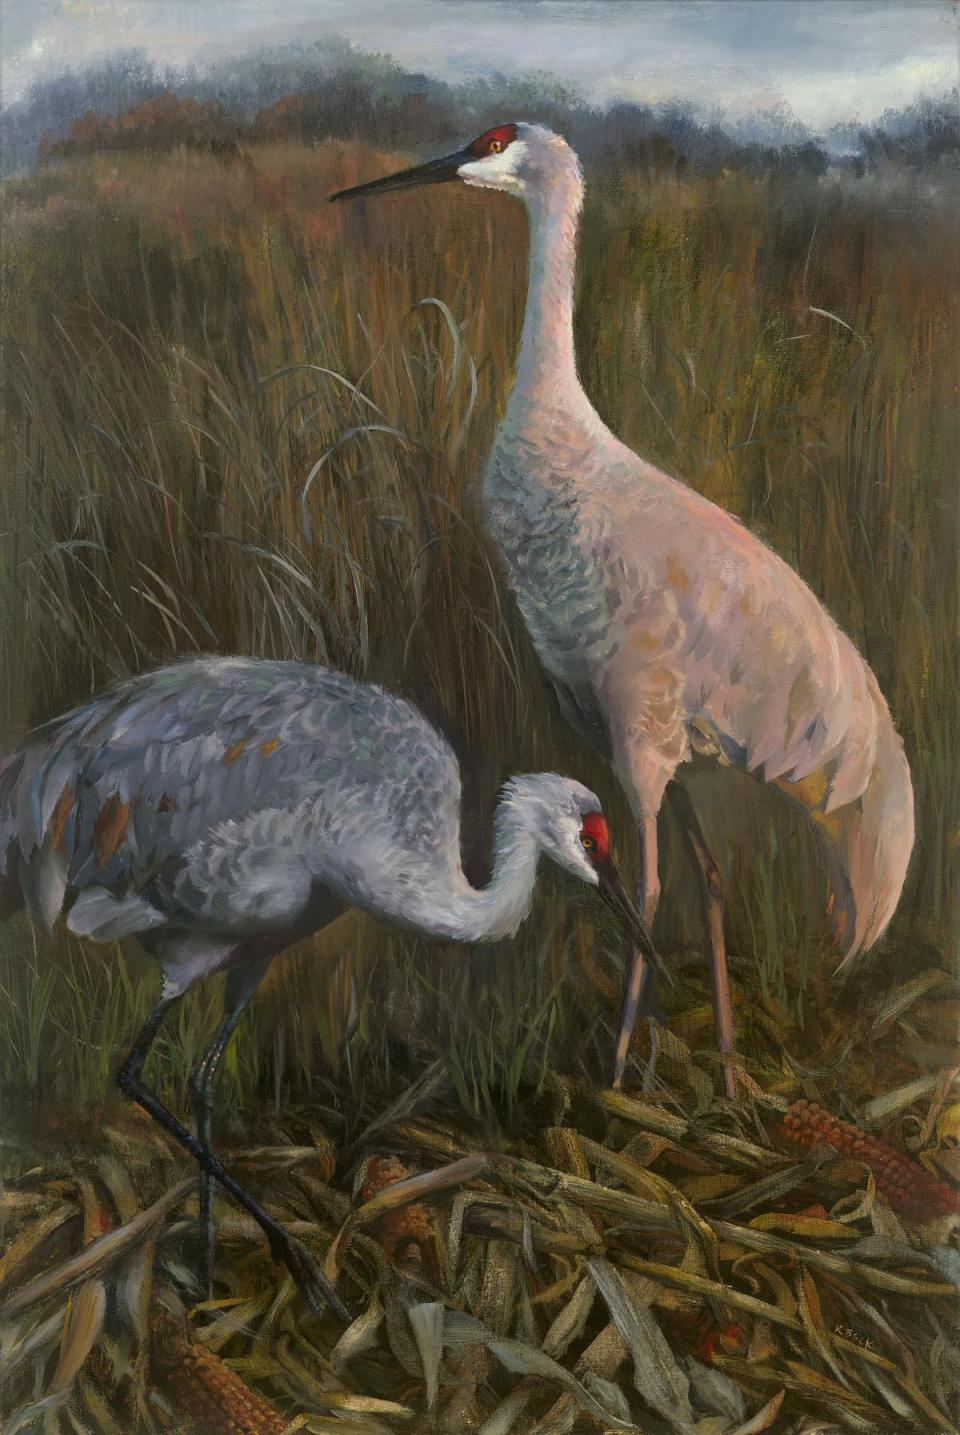 Add Artwork   Wallhanging by Kimberly Beck   Artists for Conservation